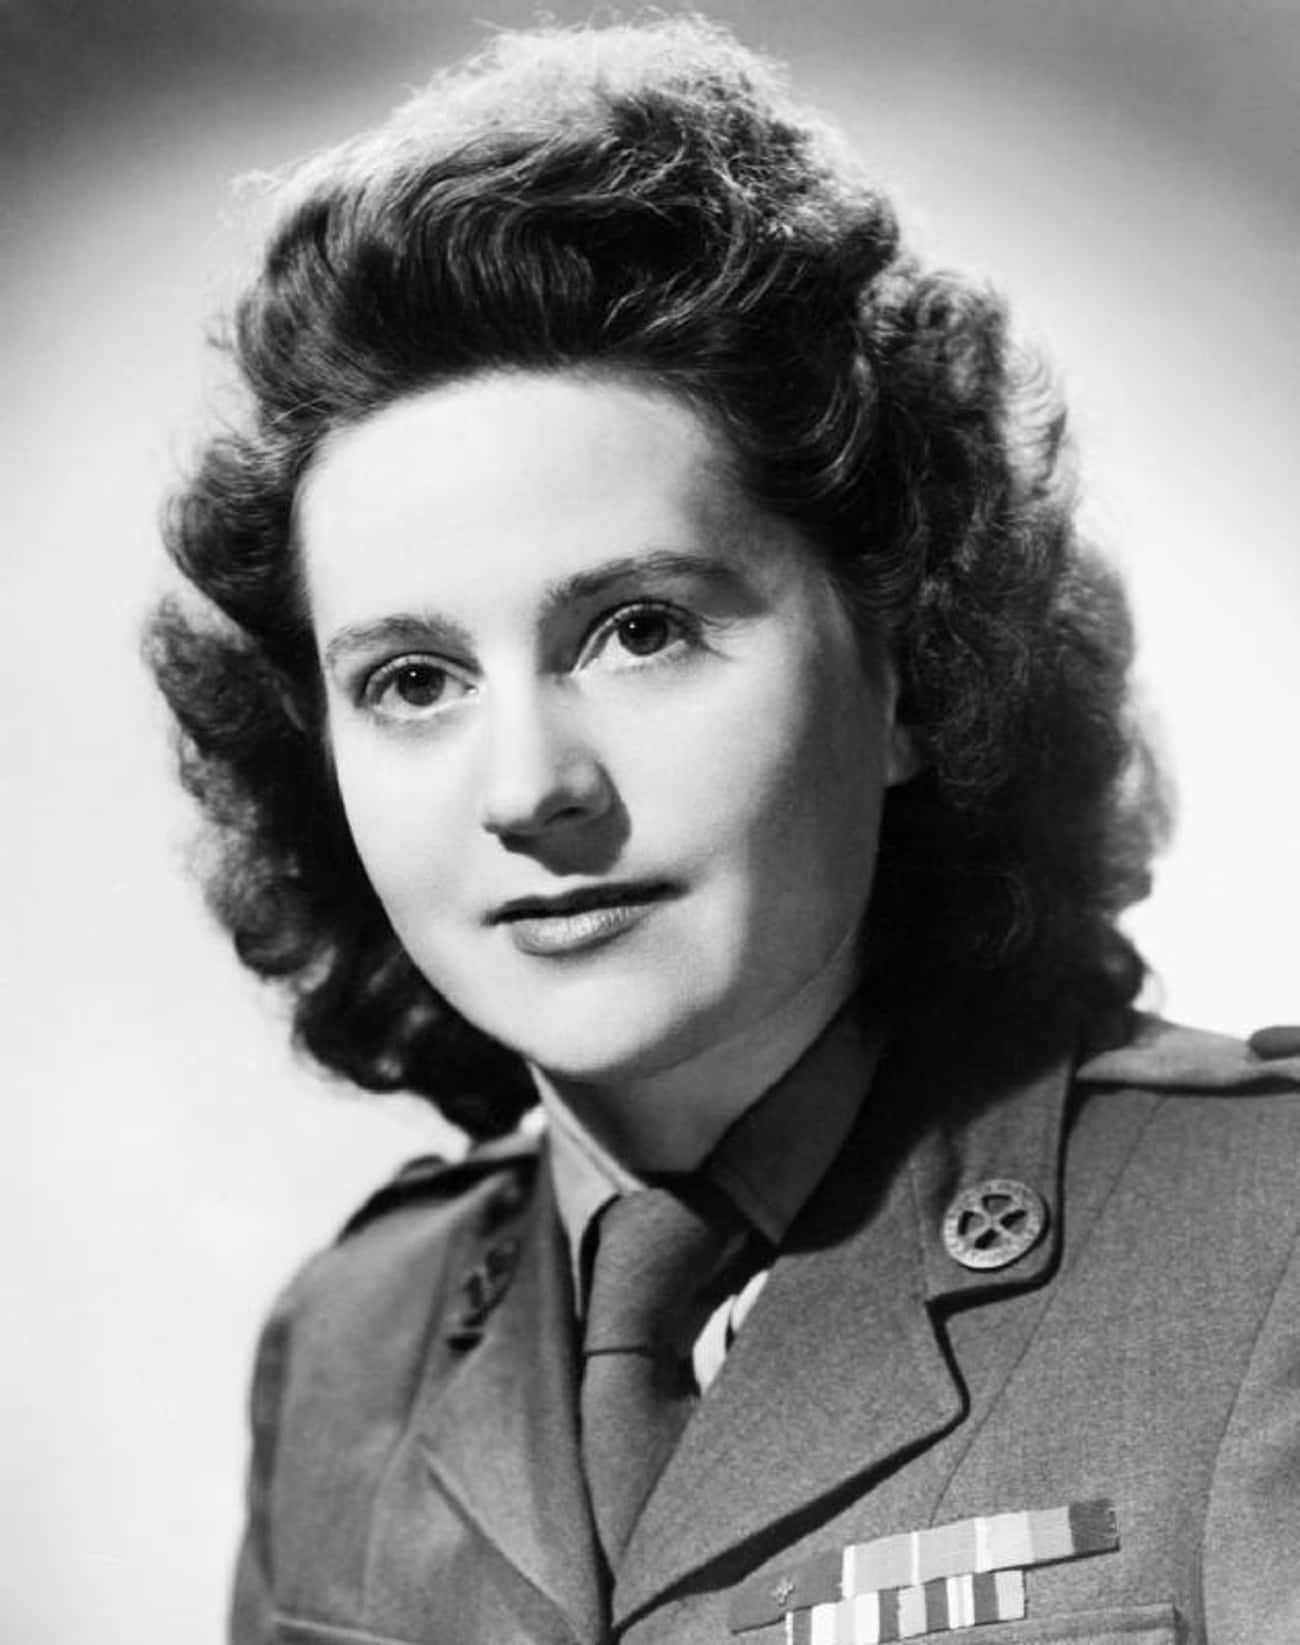 Odette Hallowes Survived by Cl is listed (or ranked) 4 on the list The Most Hardcore WWII Spy Stories You'll Ever Read